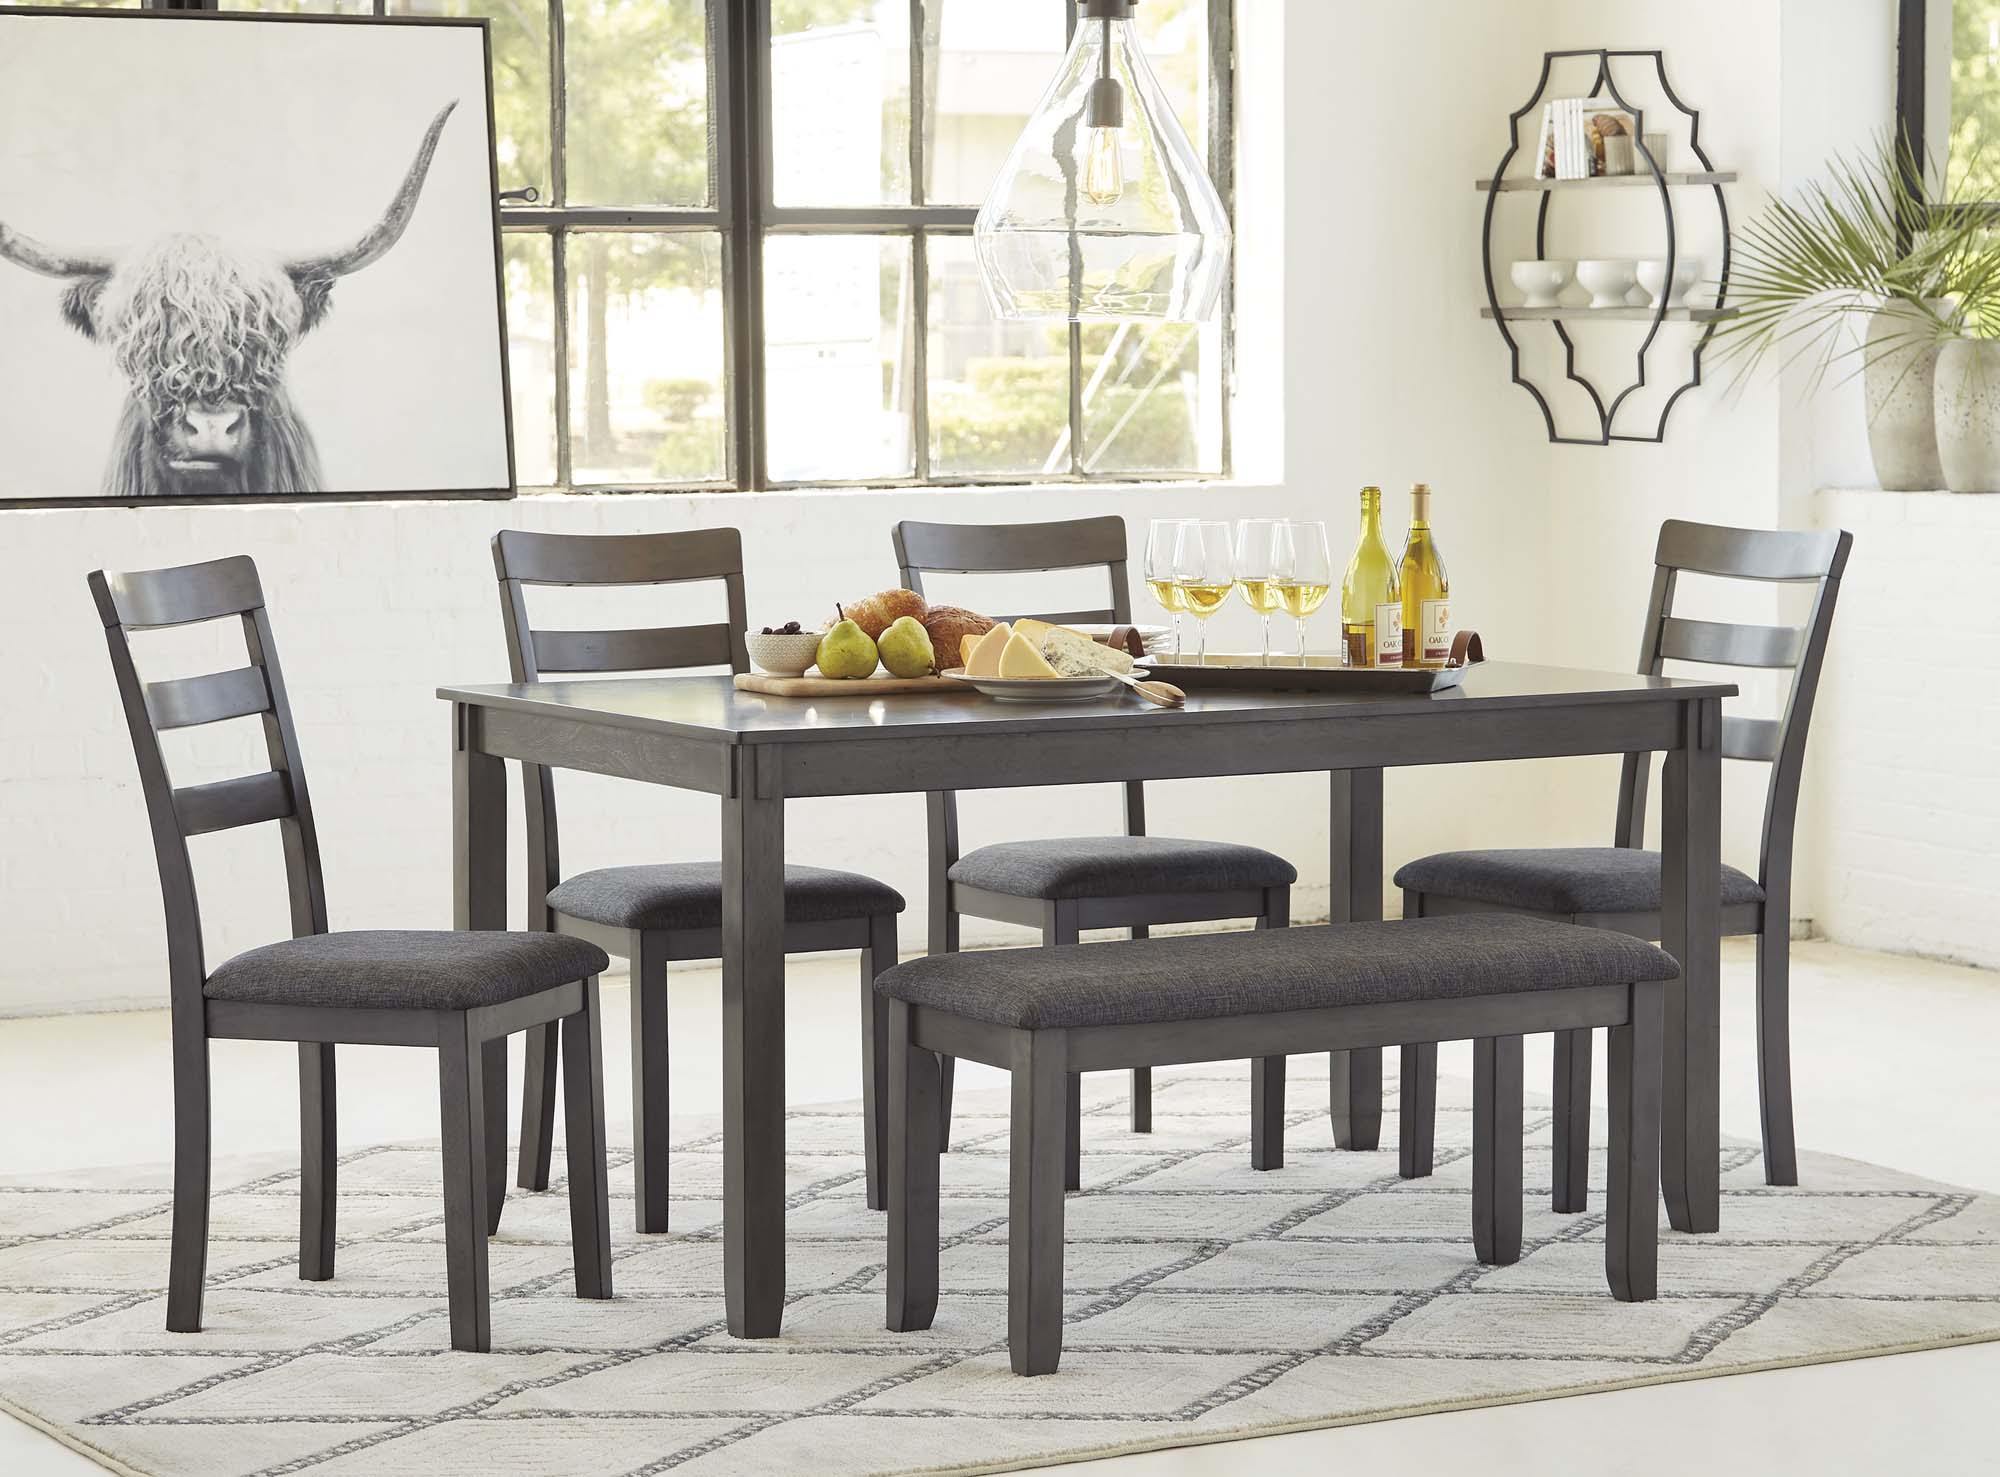 Bridson 6 Piece Dining Room Set - MJM Furniture